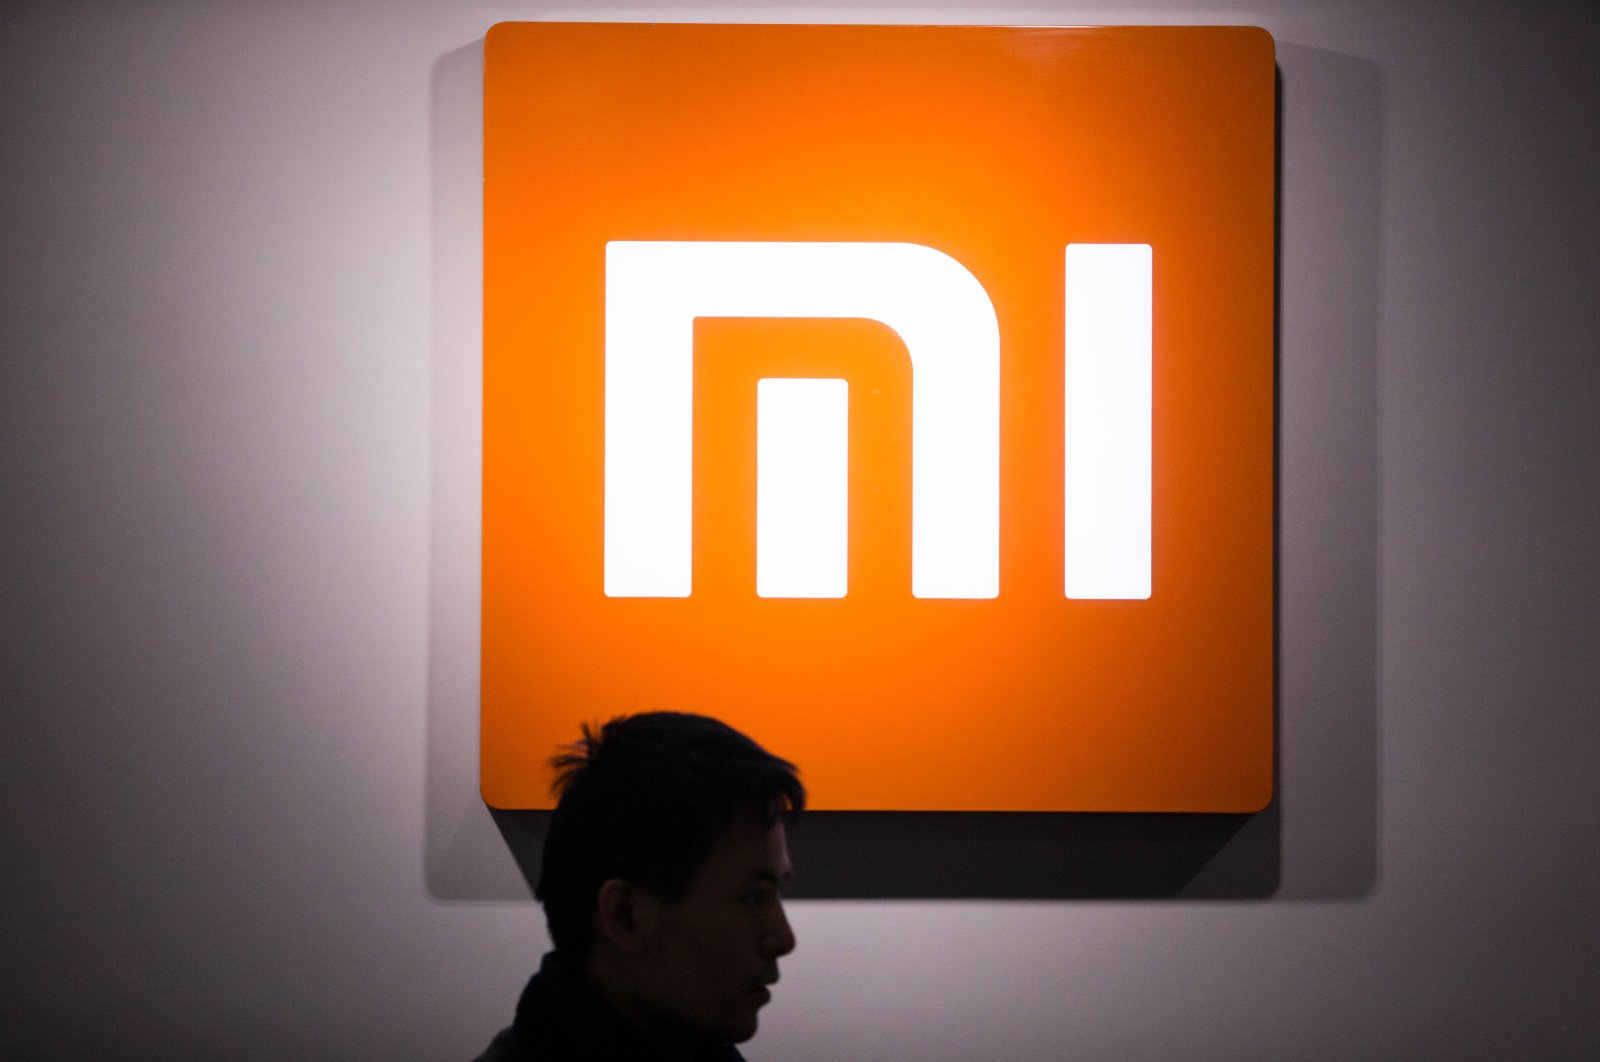 A Chinese customer visits a Xiaomi store in Hangzhou city, Zhejiang province, east China, on March 12, 2016. (Reuters)